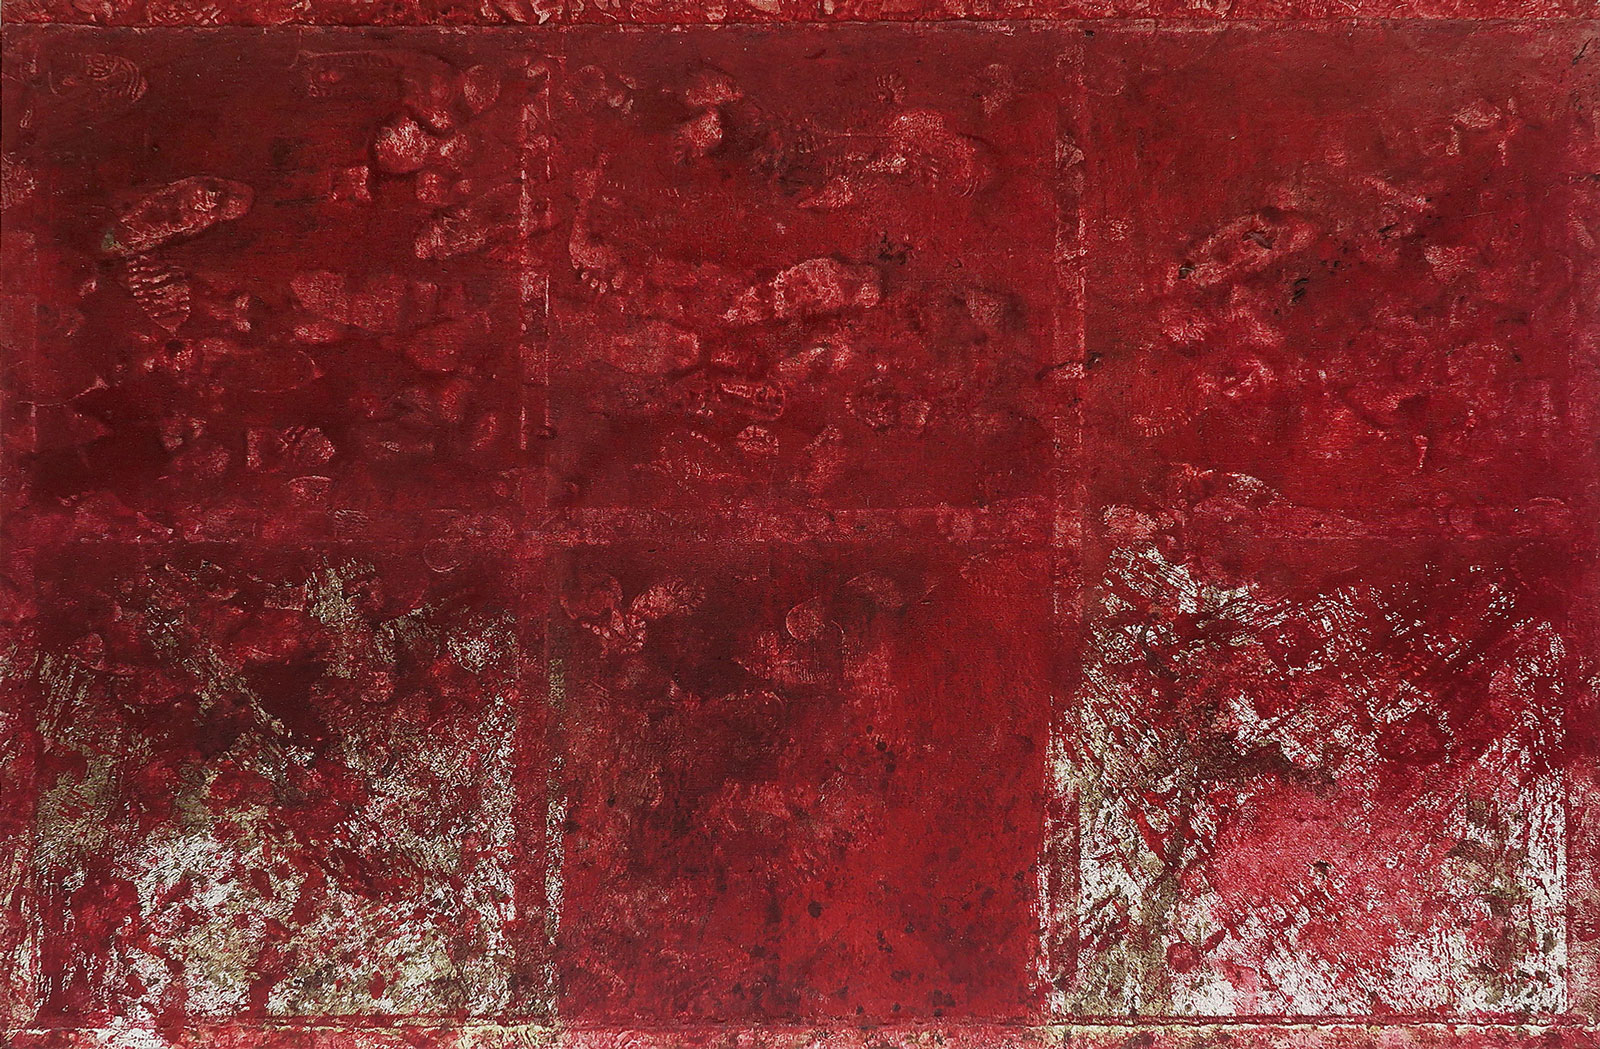 1998 Blood and Acrylic on Canvas 78 3/4 x 118 1/4 in 200 x 300 cm - Marc Straus Gallery